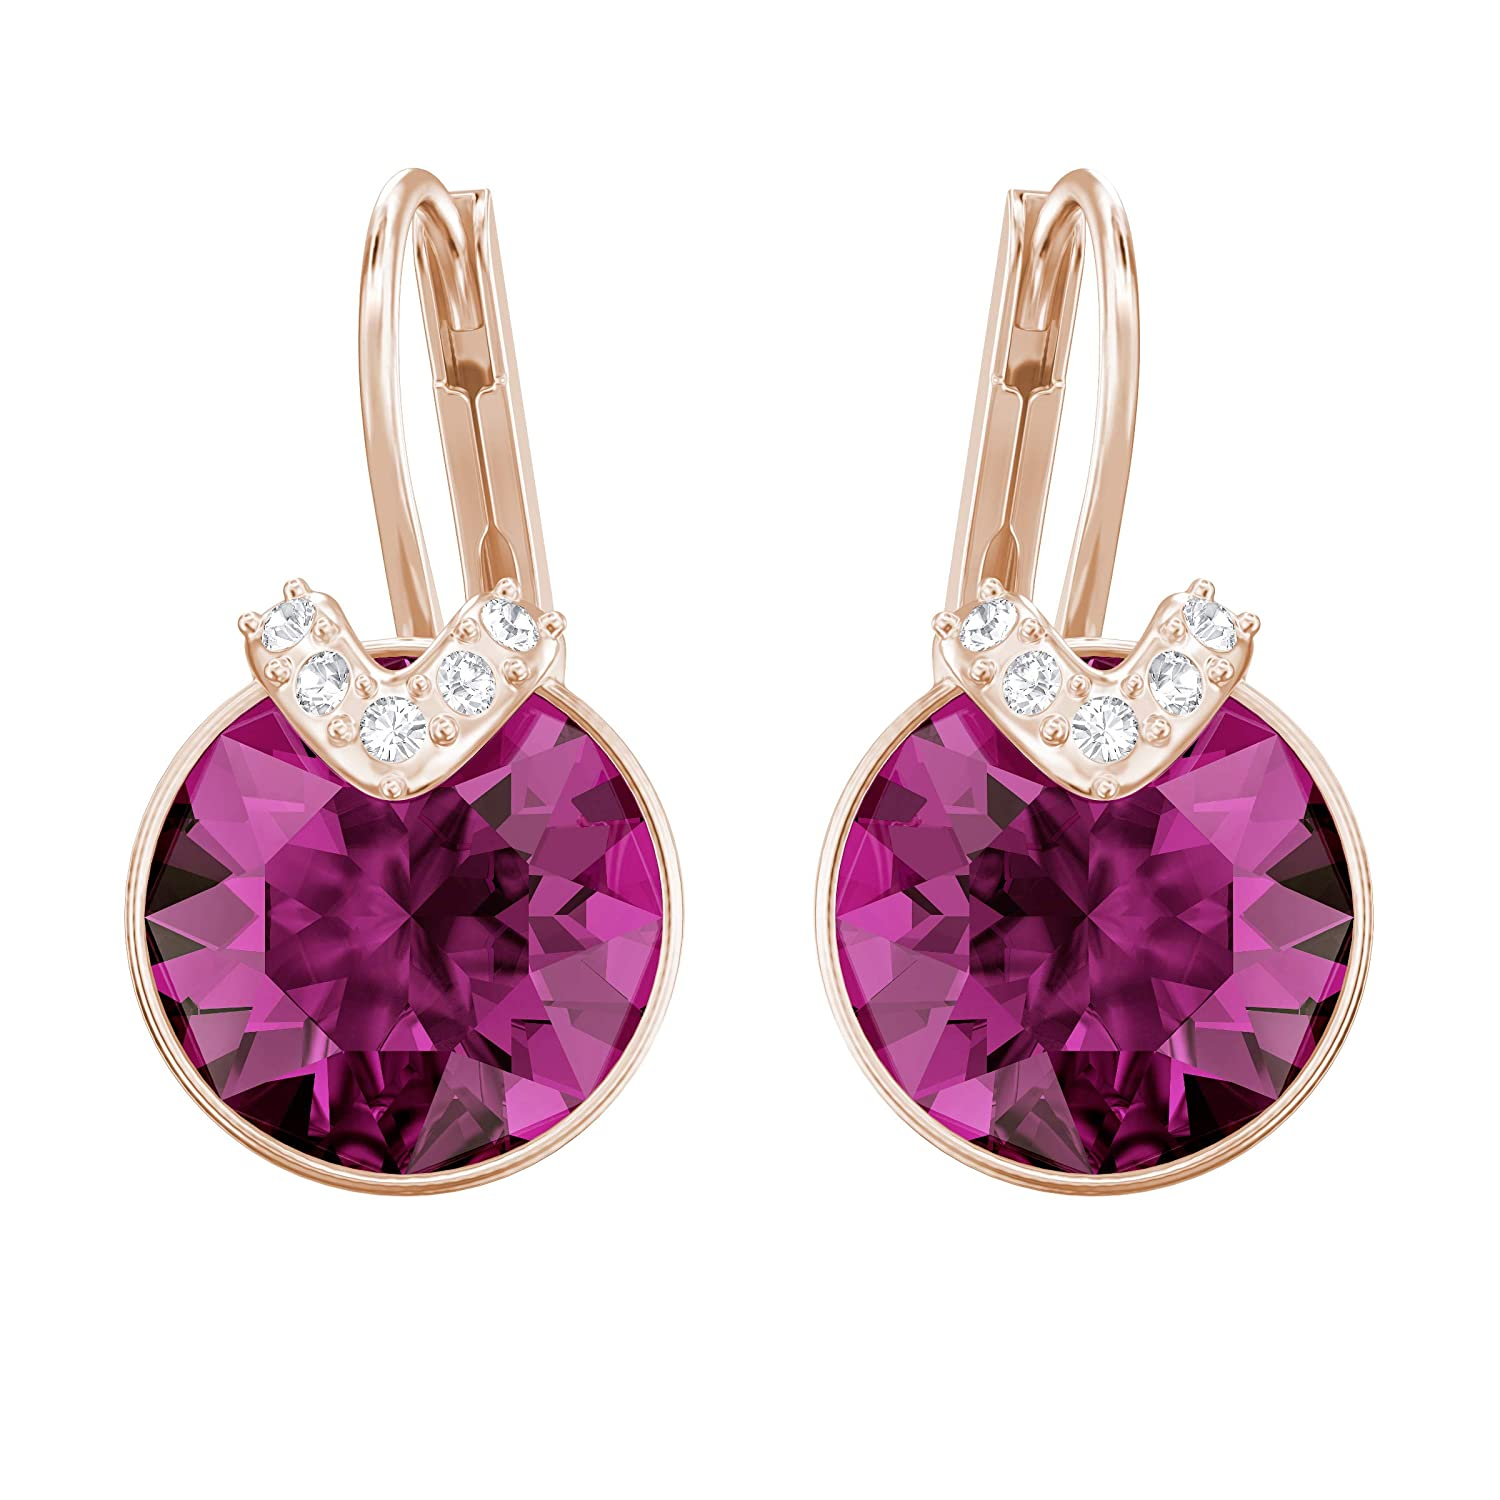 5fd26ae9b5c994 Swarovski Bella V Pierced Earrings, Fuchsia, Rose gold plating:  Amazon.co.uk: Jewellery